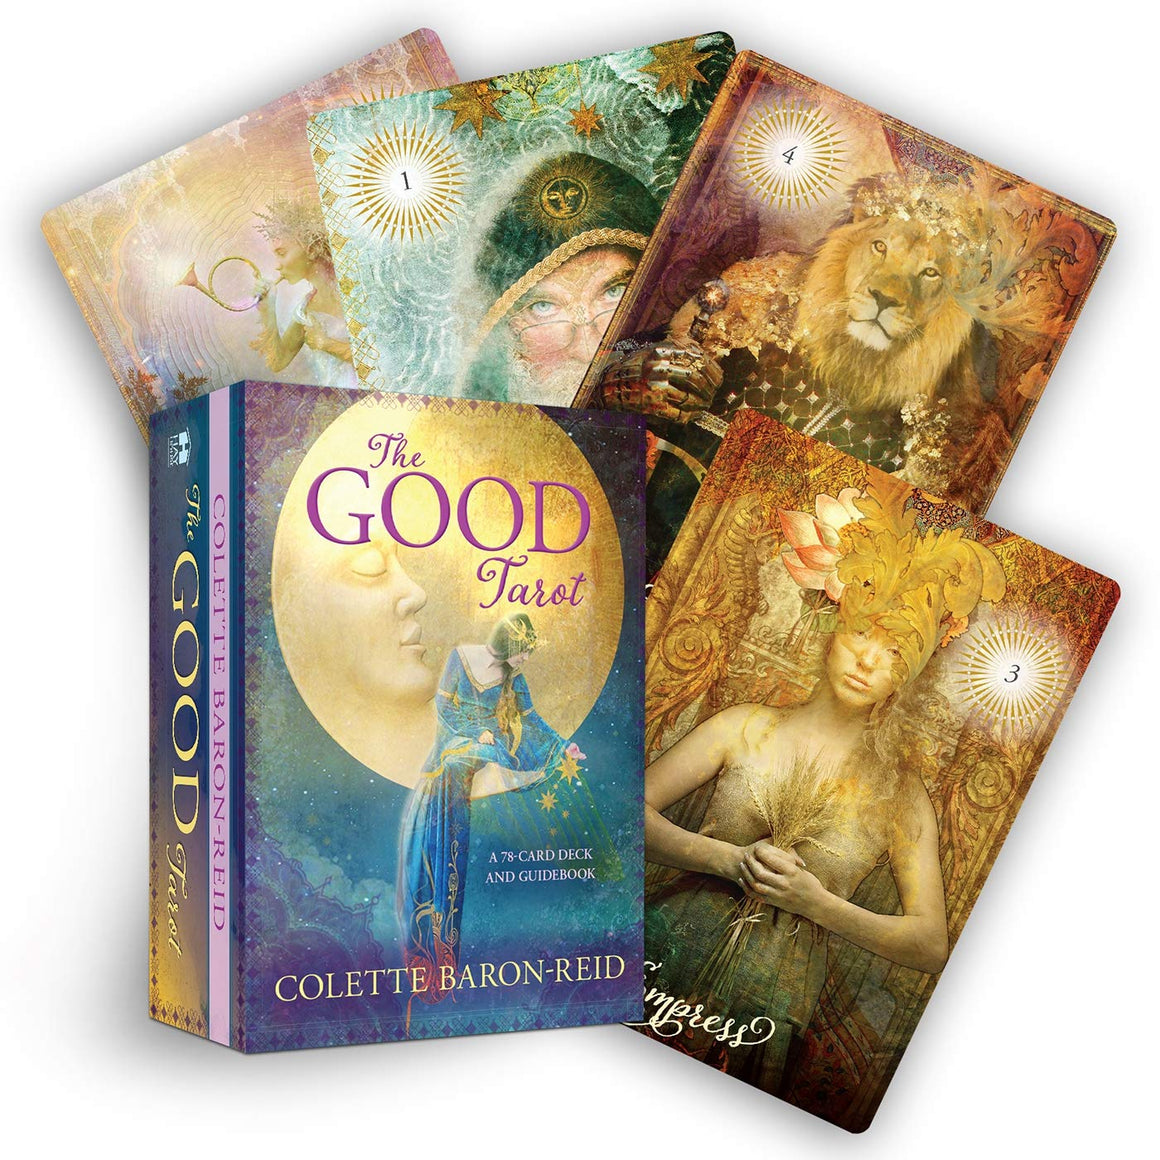 Good Tarot A 78 Card Deck And Guidebook by Colette Baron-Reid